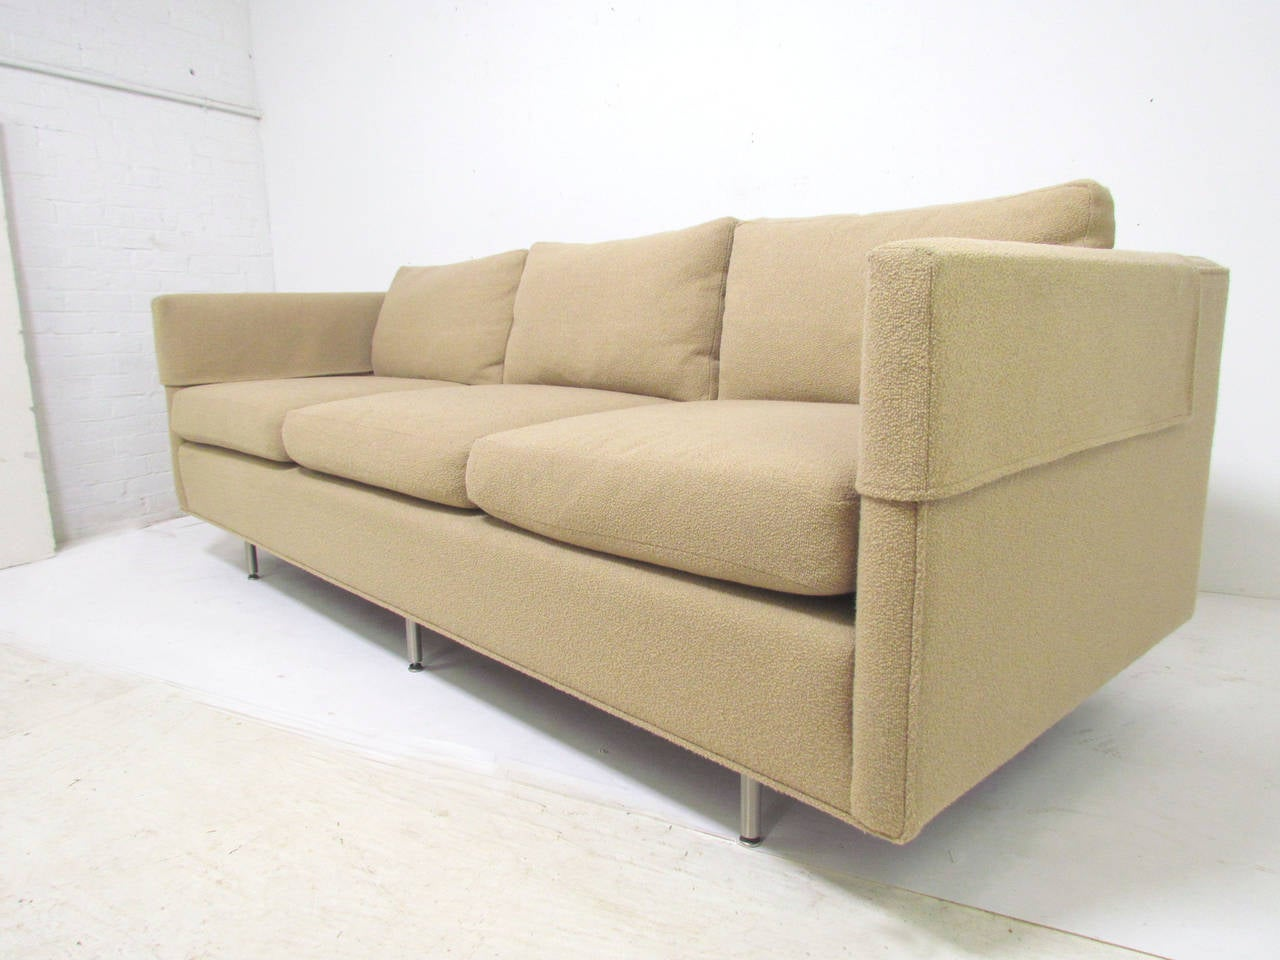 chair design research process tuxedo three seat quotcambridge quot sofa with down cushions by